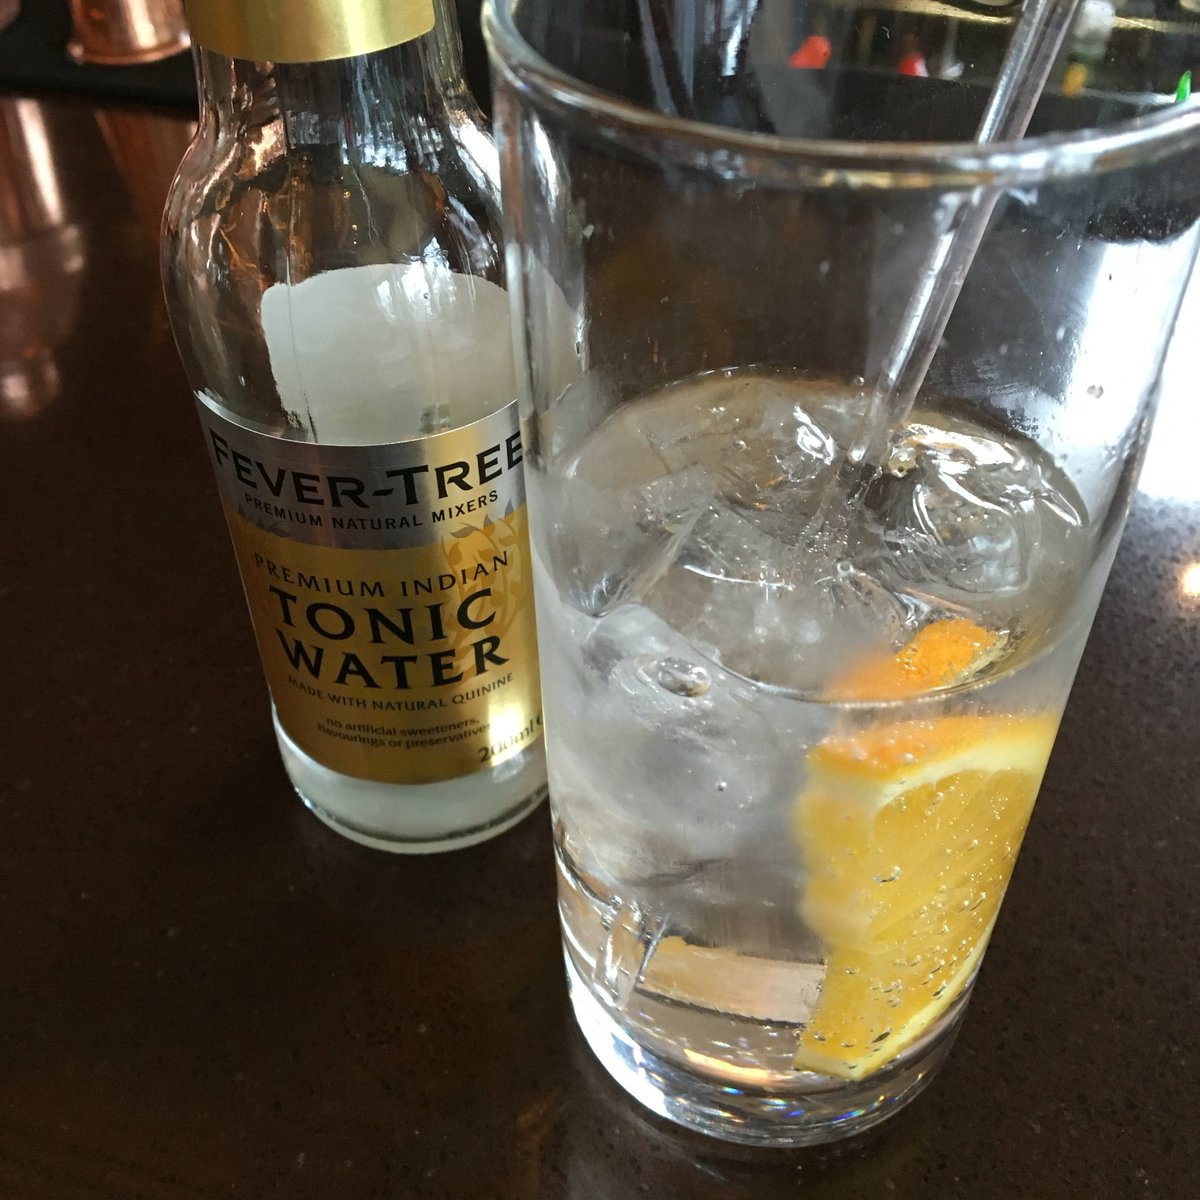 Proper lunch #cocktail when dining @jwsteakhouse: DD #Gin & @FeverTreeMixers Tonic #london https://t.co/X7DWAI85sI